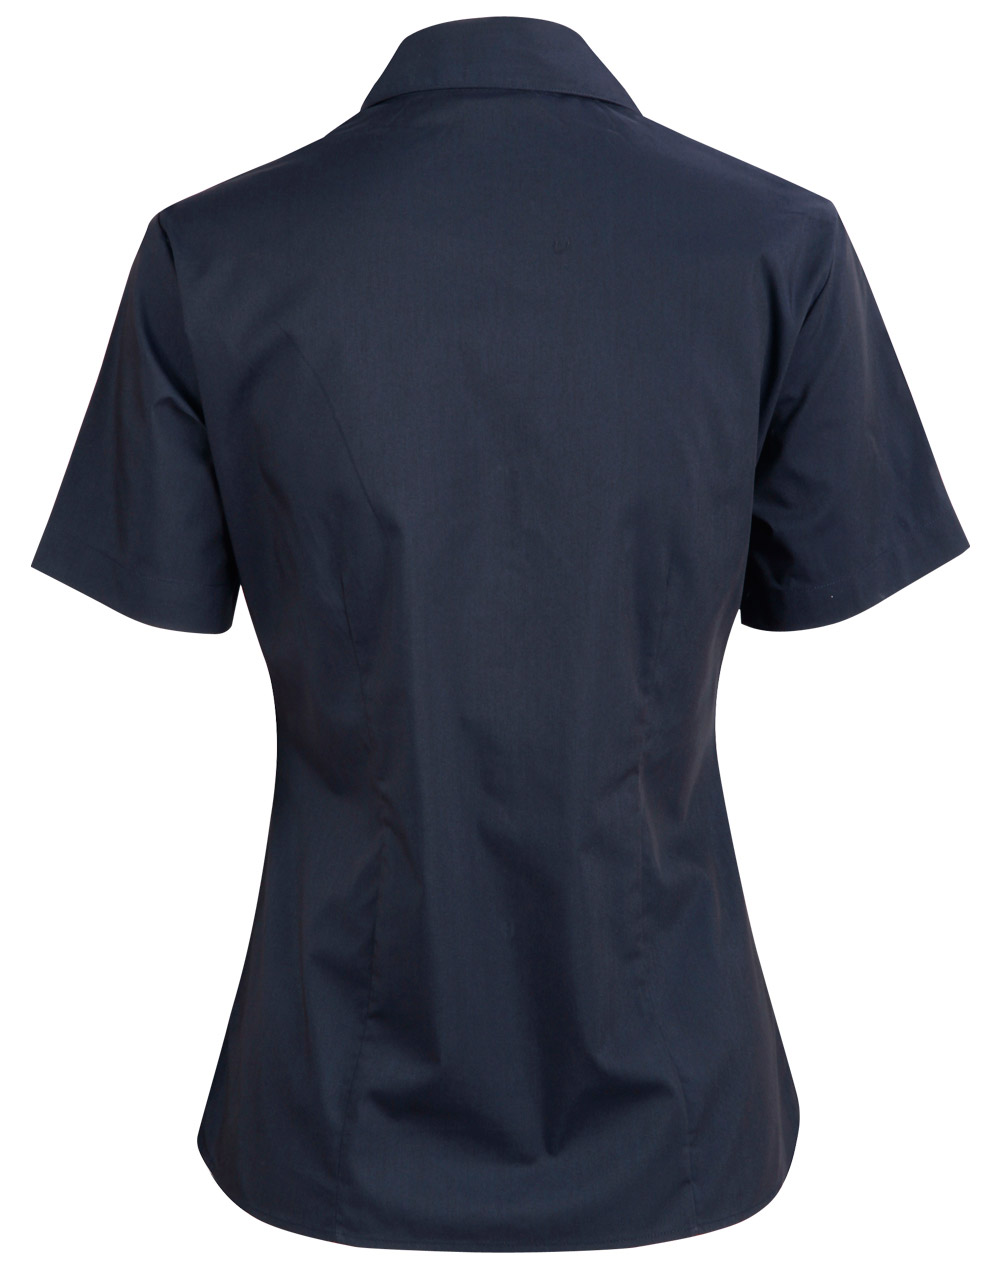 https://s3-ap-southeast-1.amazonaws.com/ws-imgs/BUSINESSSHIRTS/BS07S_Navy_Back.jpg